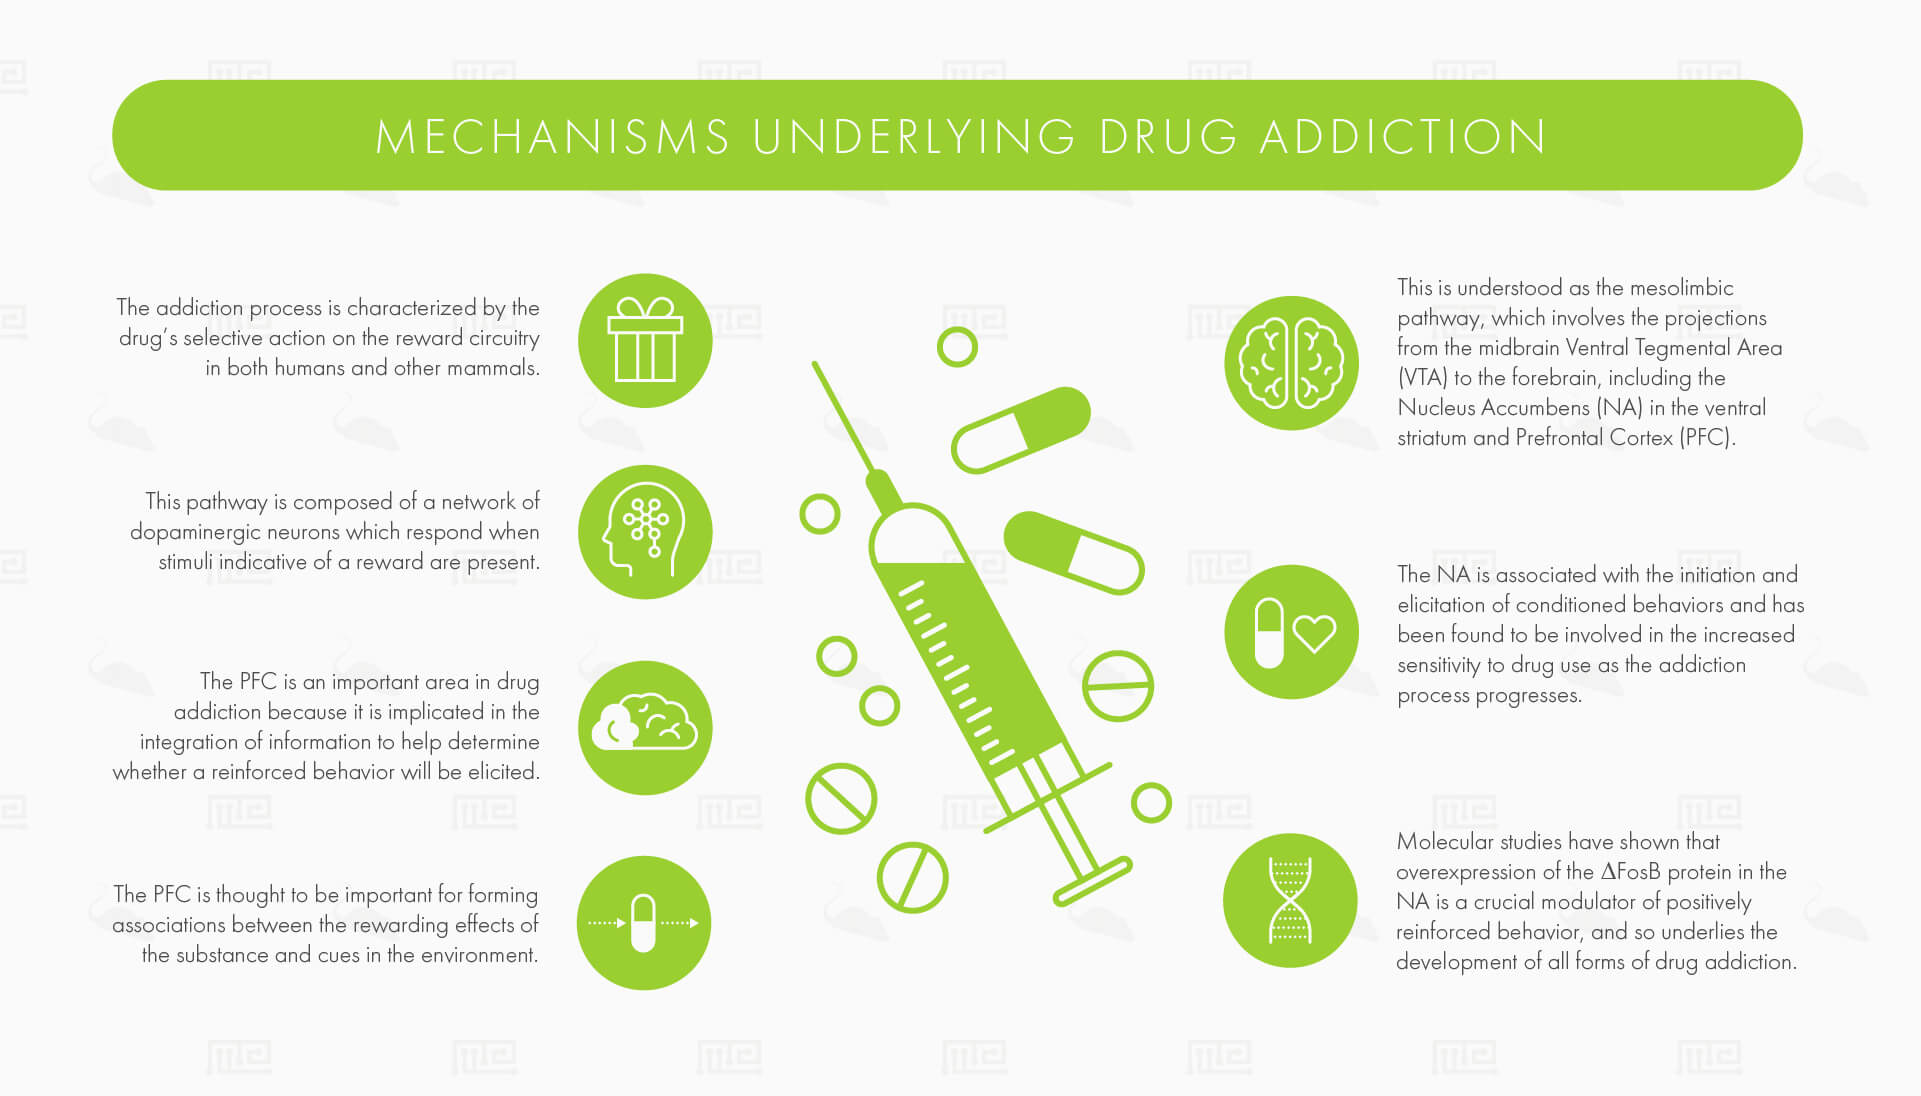 mechanisms underlying drug addiction